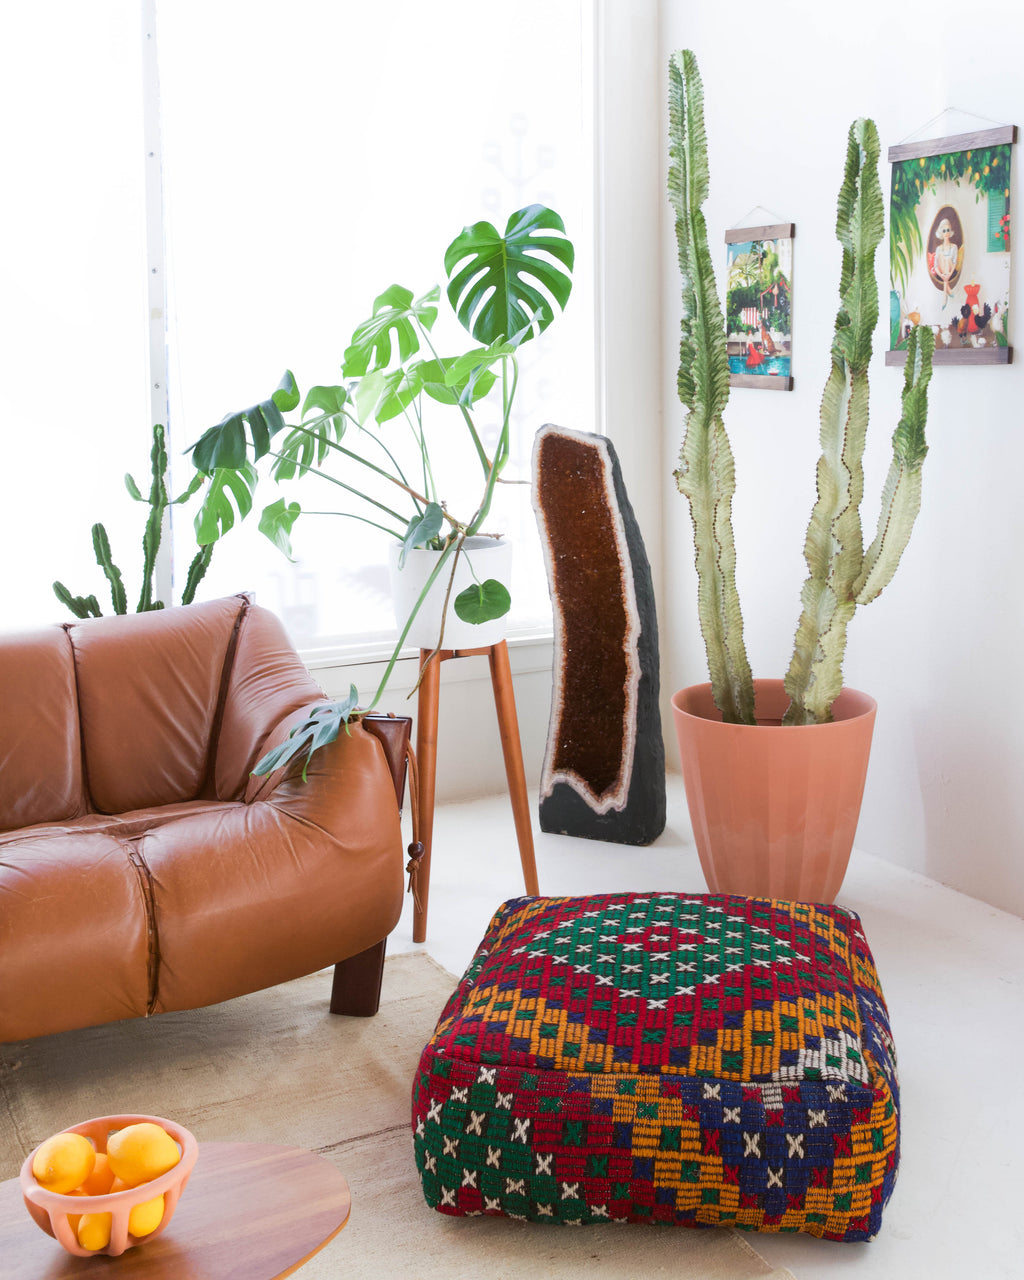 Foor pouf in a living room setting, pillow, turkish pillow, kilim pillow, home decor, decorative pillow, sham, rug pillow, decor, home decor, pouf, floor cushion, cushion, Portland, rugshop, Oregon, Wild Shaman, ottoman